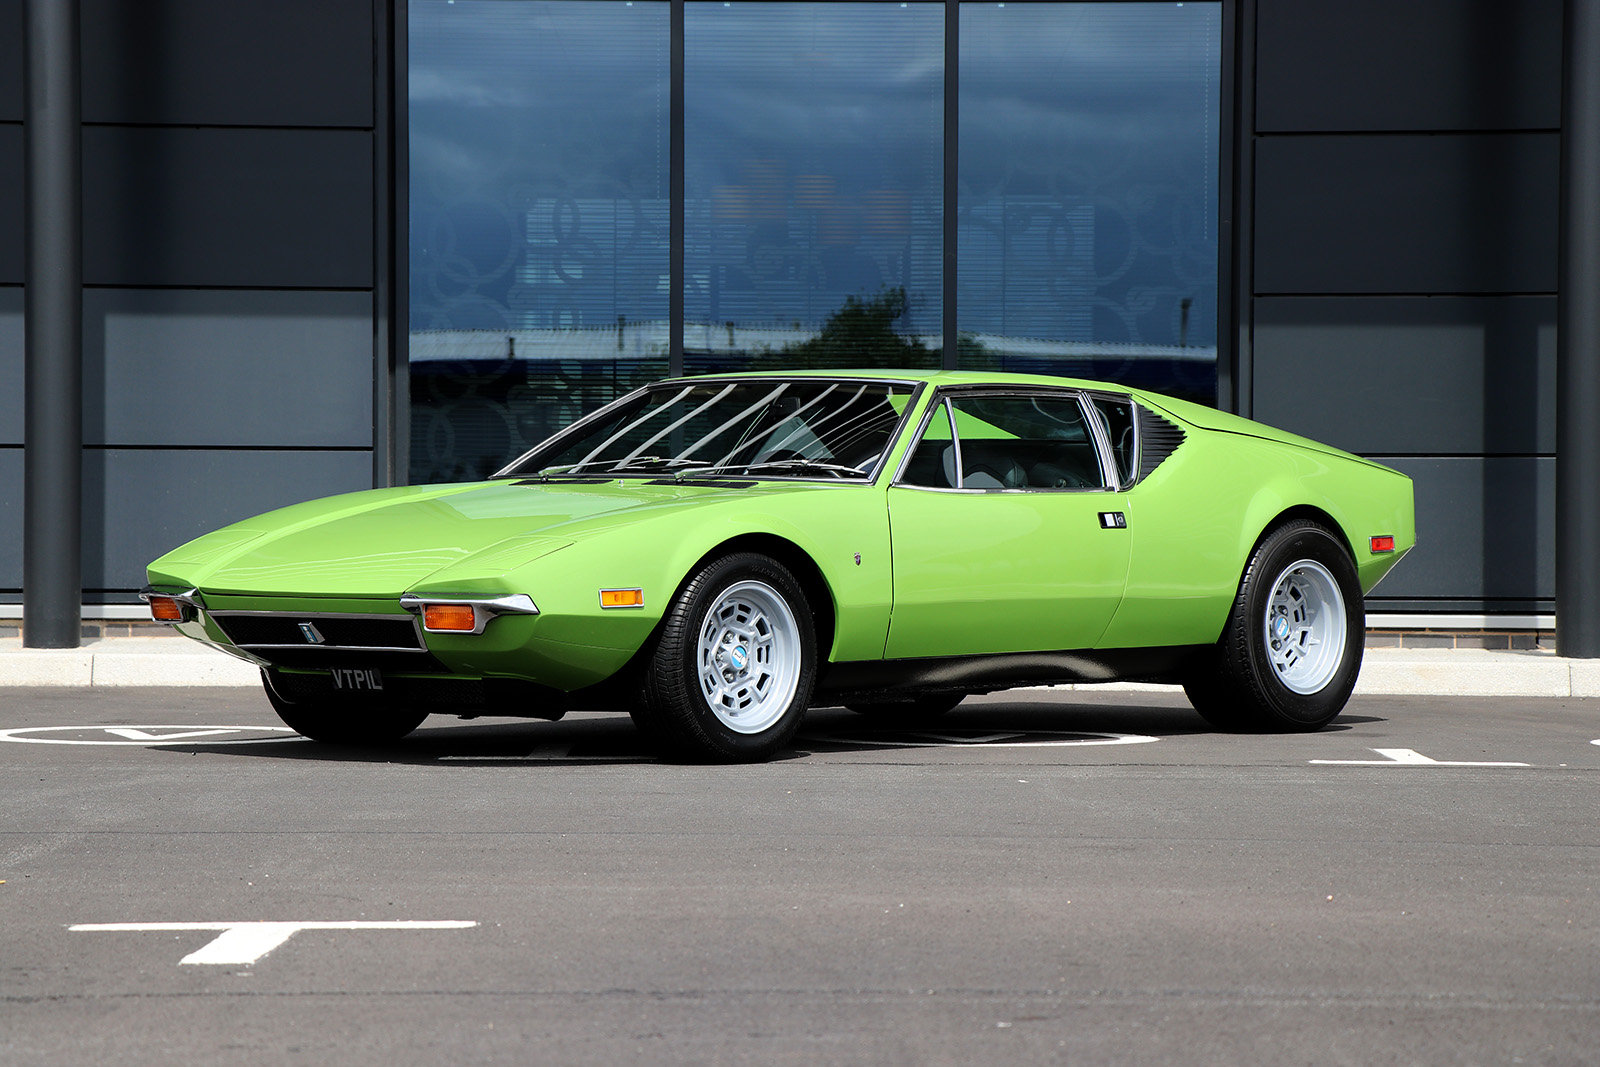 Pantera For Sale >> For Sale Uk Fully Restored 1972 De Tomaso Pantera For Sale